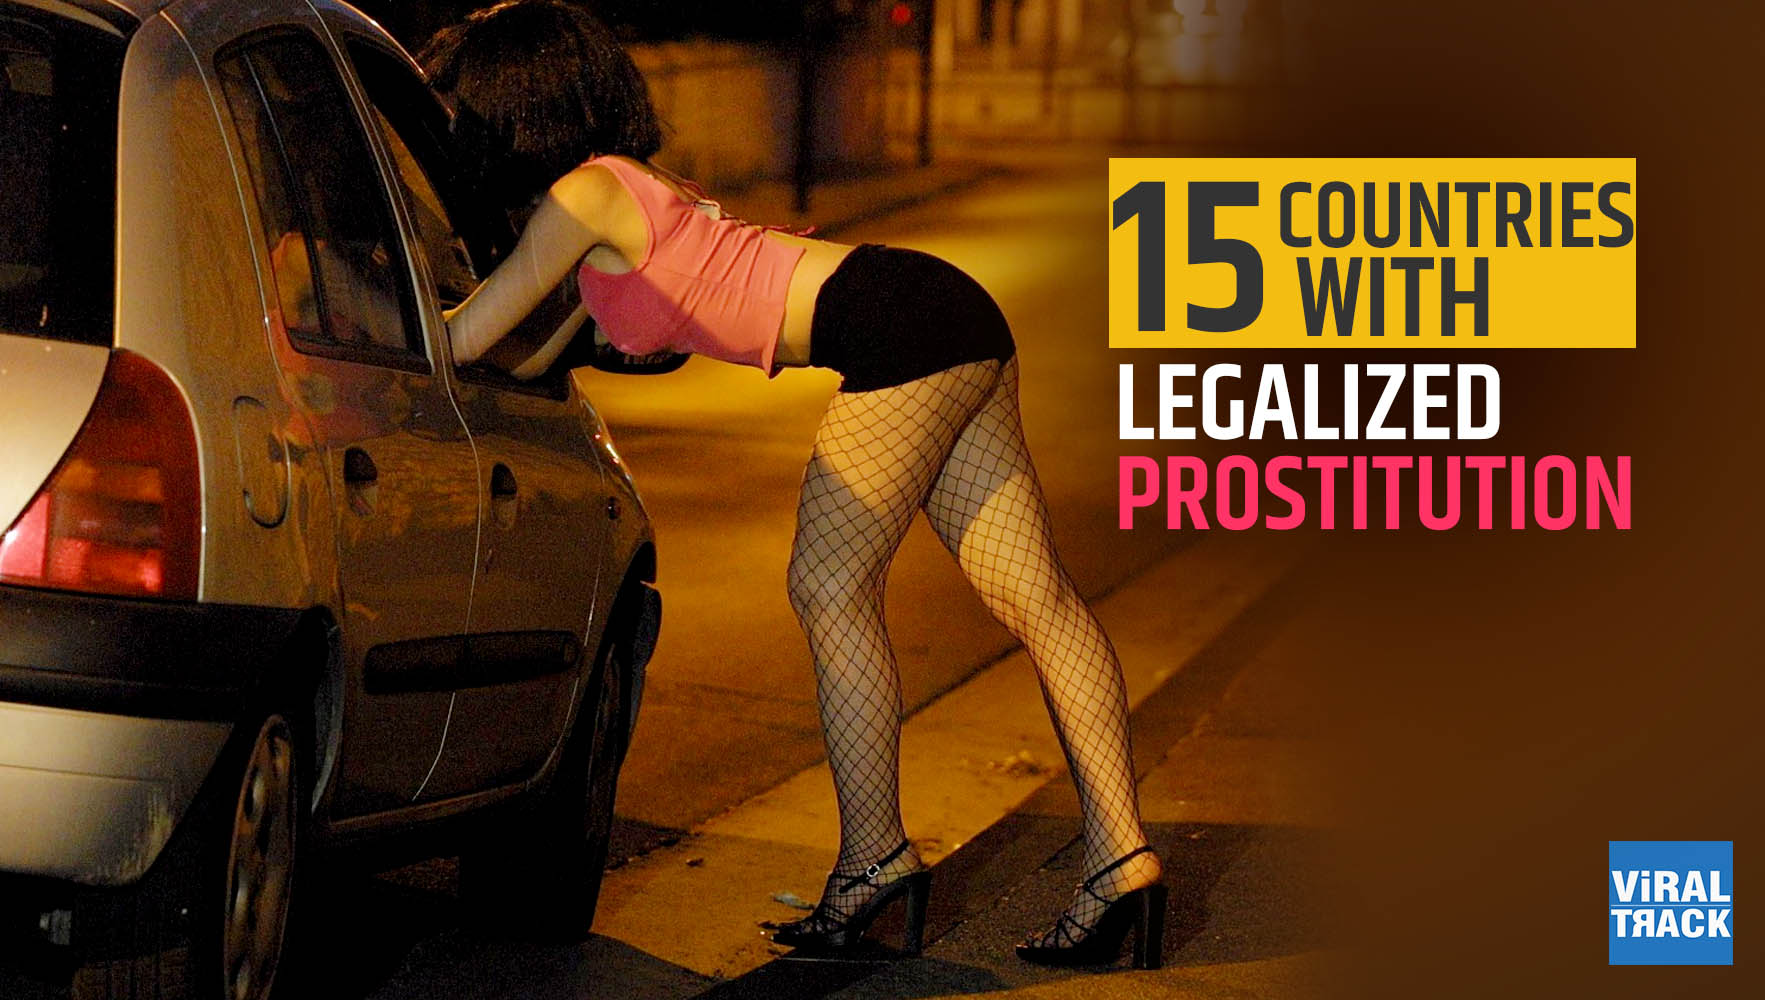 15 countries with Legalized prostitution